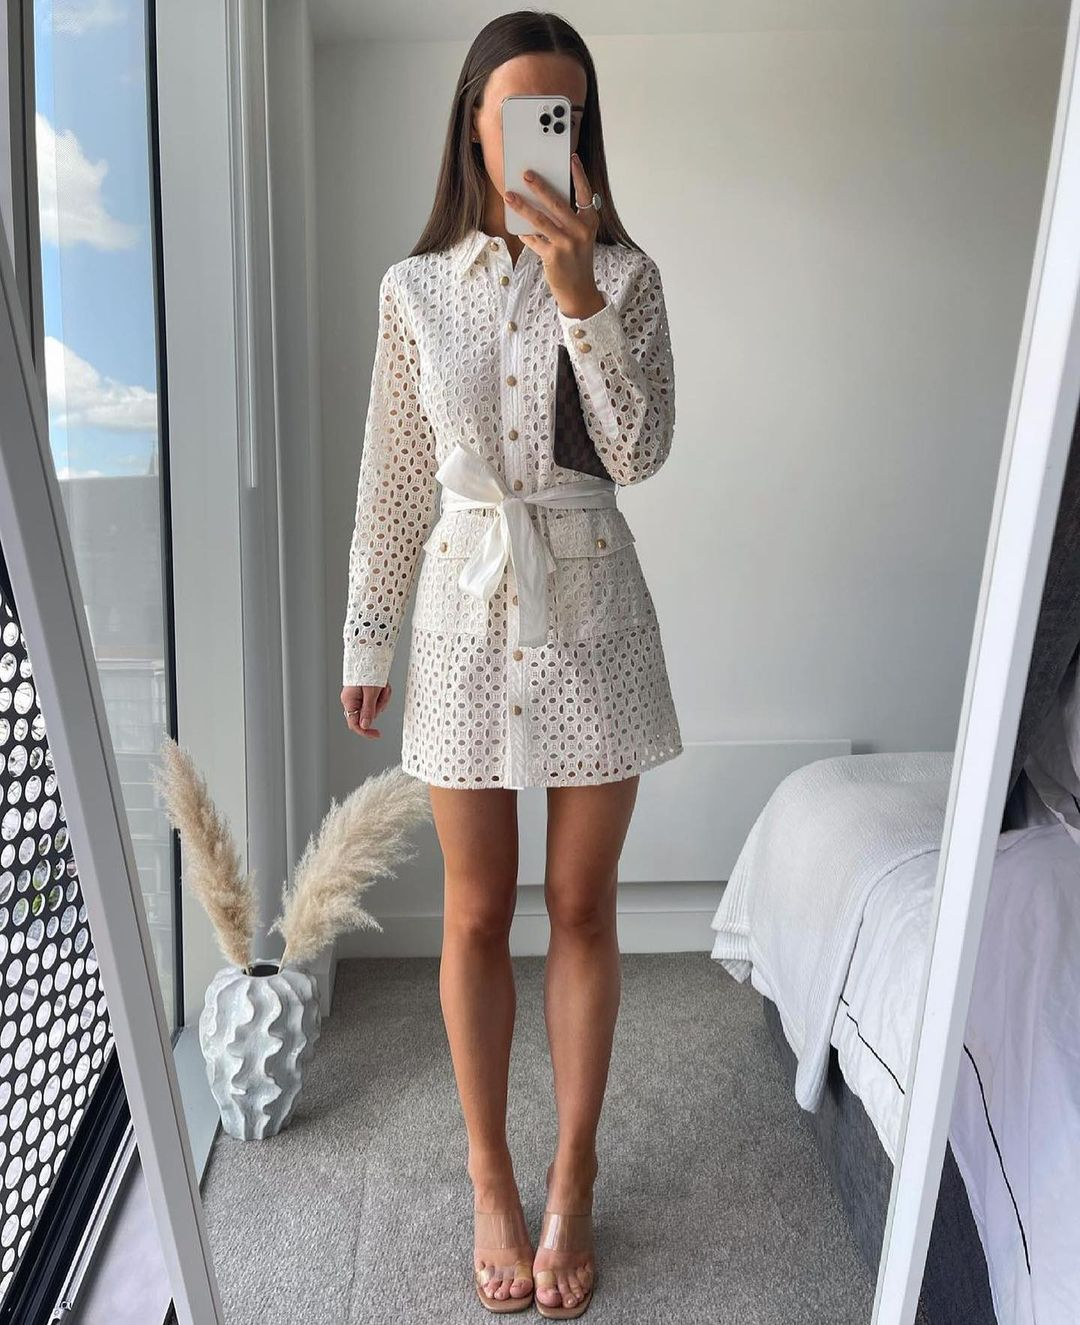 dress with perforated embroidery de Zara sur zara.outfits